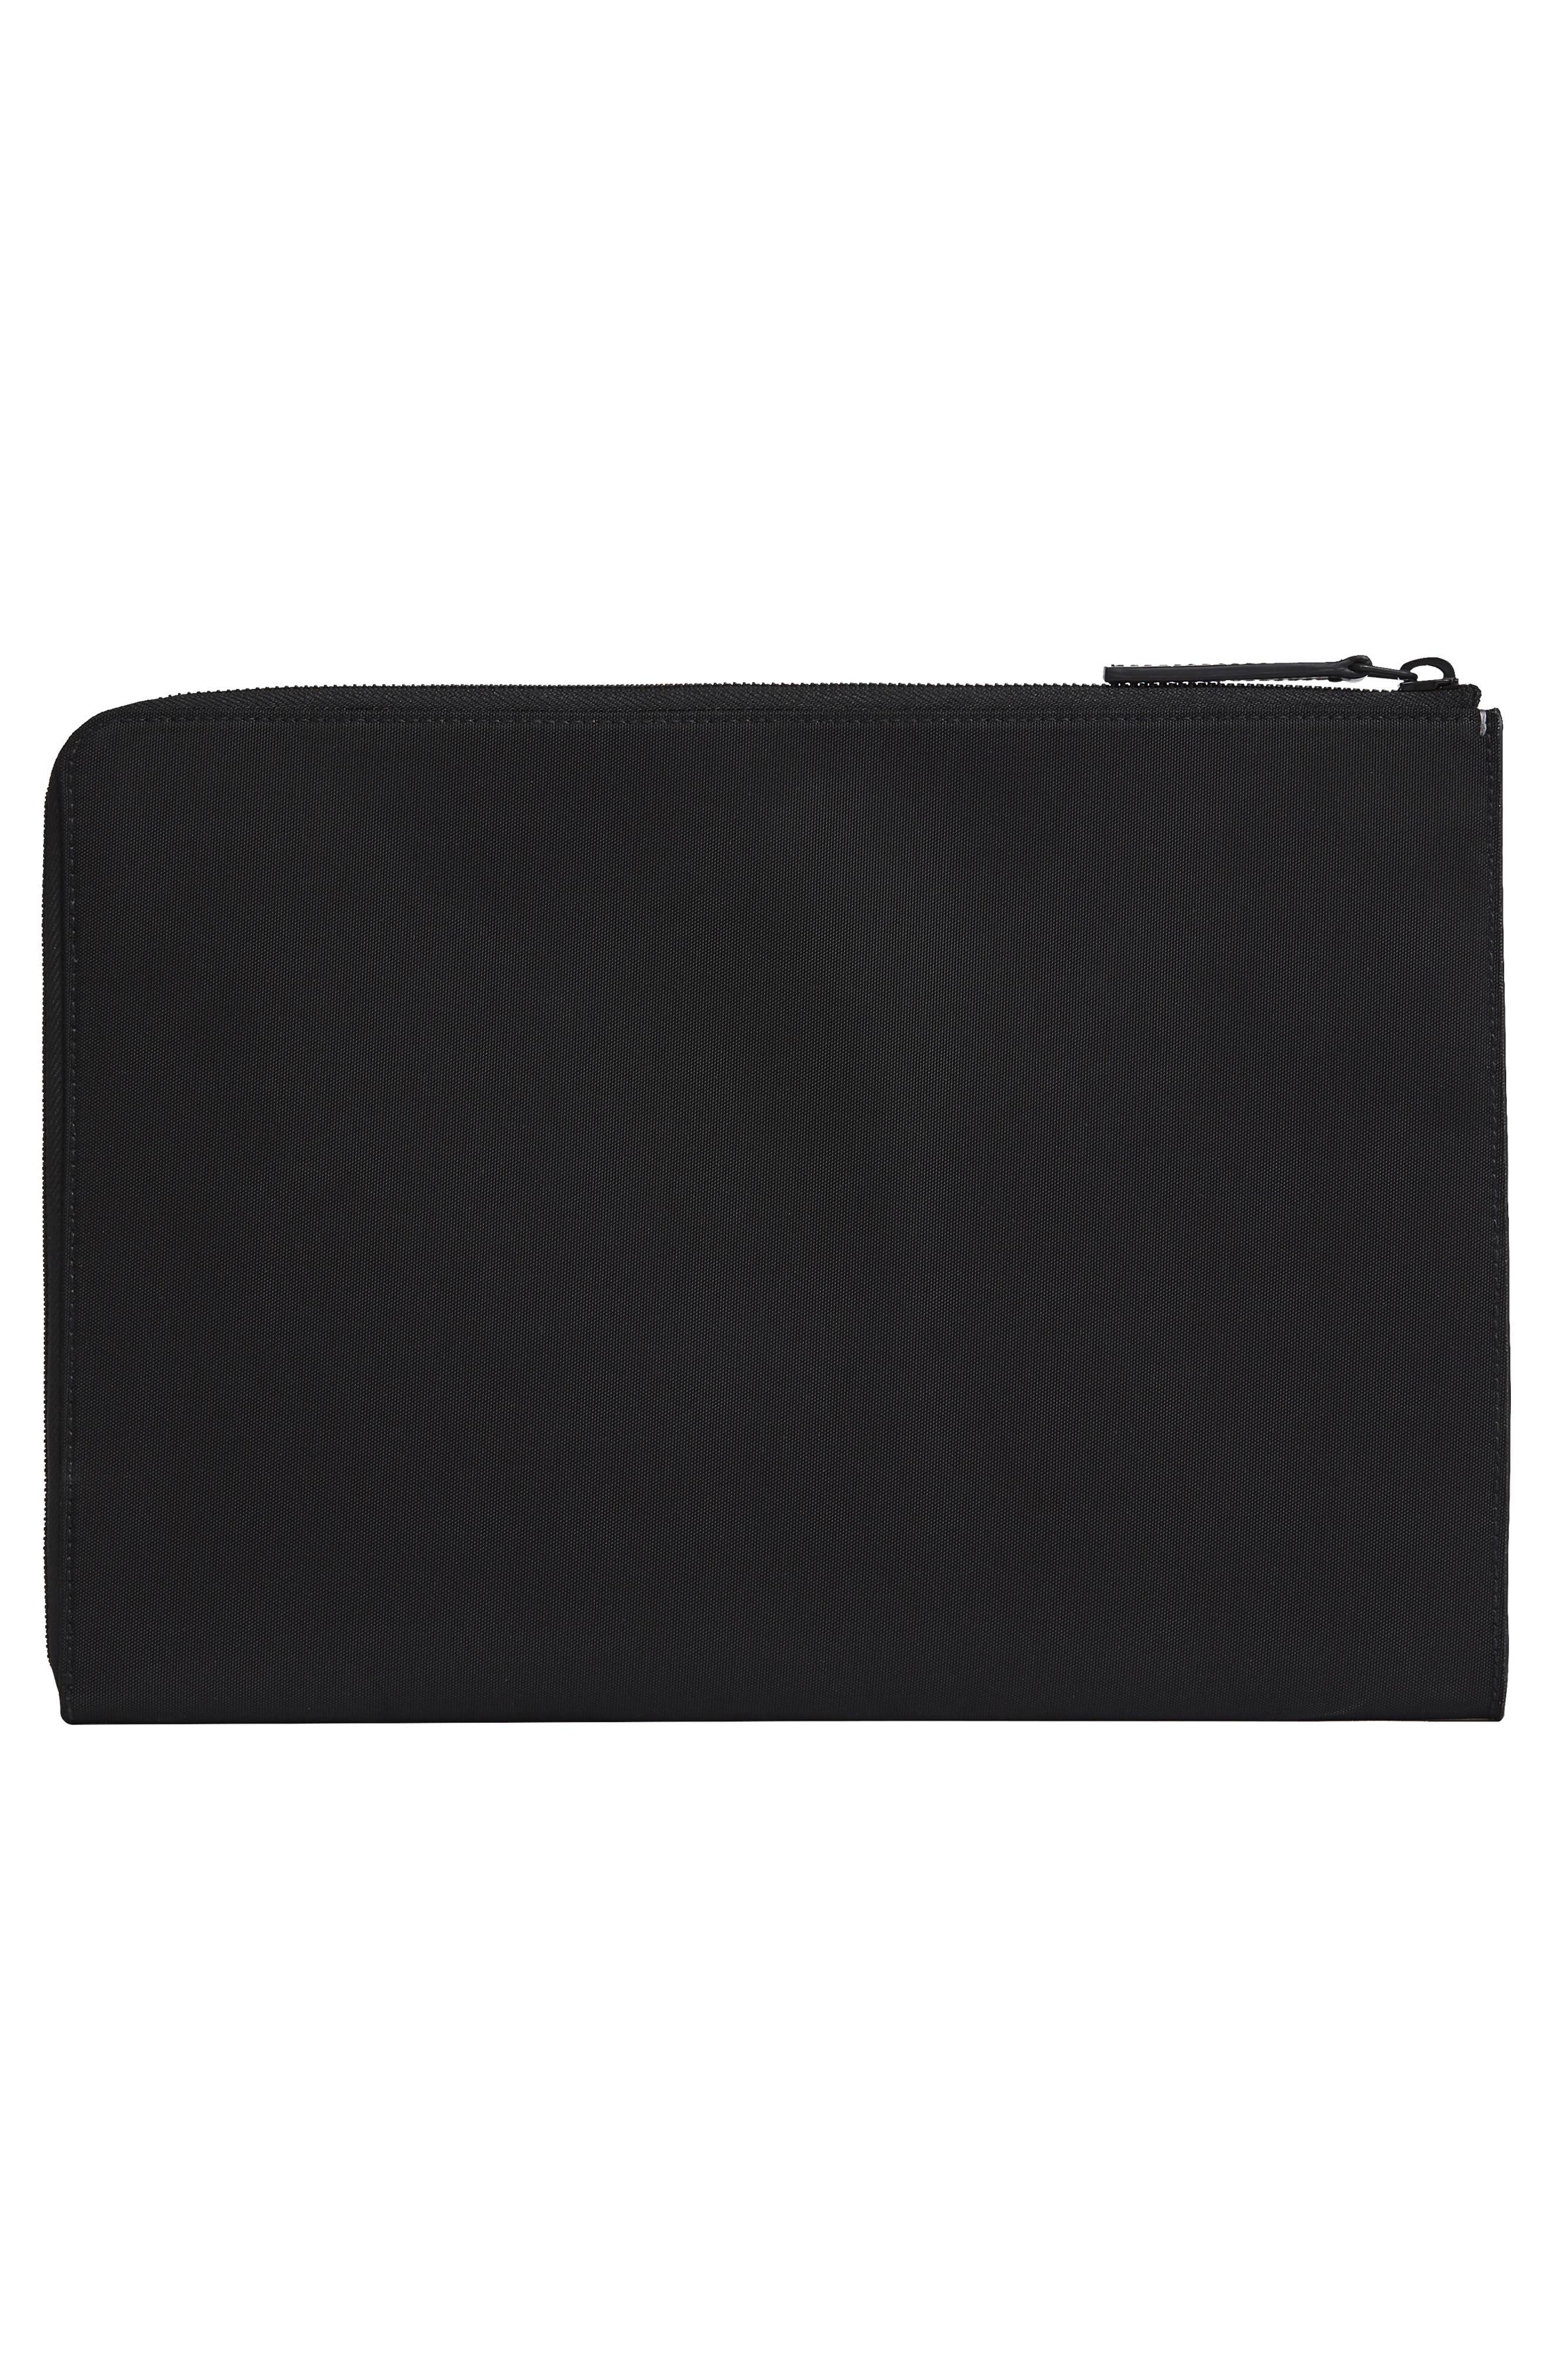 Portfolio Case,                             Alternate thumbnail 2, color,                             BLACK NYLON/ BLACK LEATHER